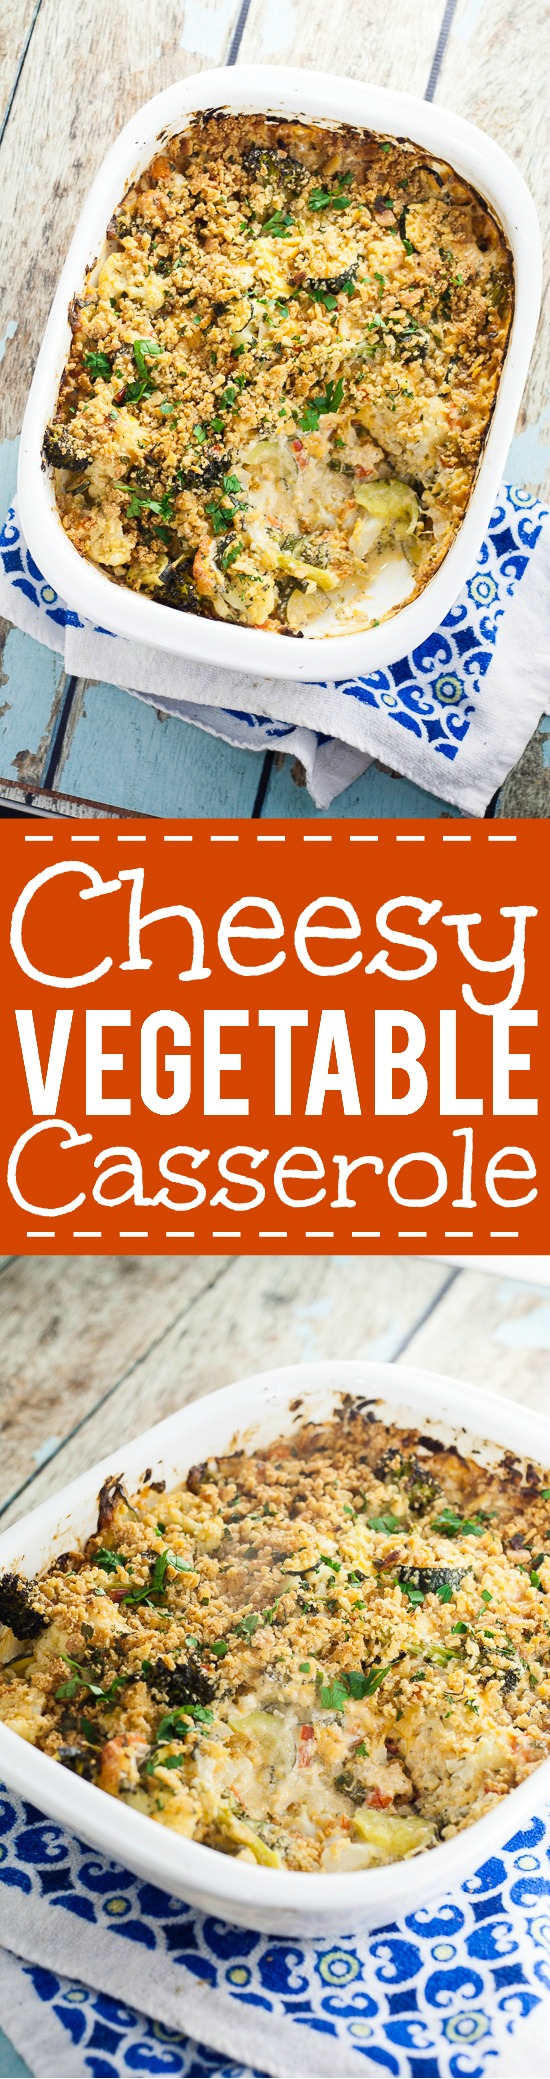 Cheesy Vegetable Casserole Recipe - Whether you use fresh or frozen vegetables, this Cheesy Vegetable Casserole recipe is perfect for potlucks and using up your favorite vegetables. I know what I'm bringing to our next potluck!